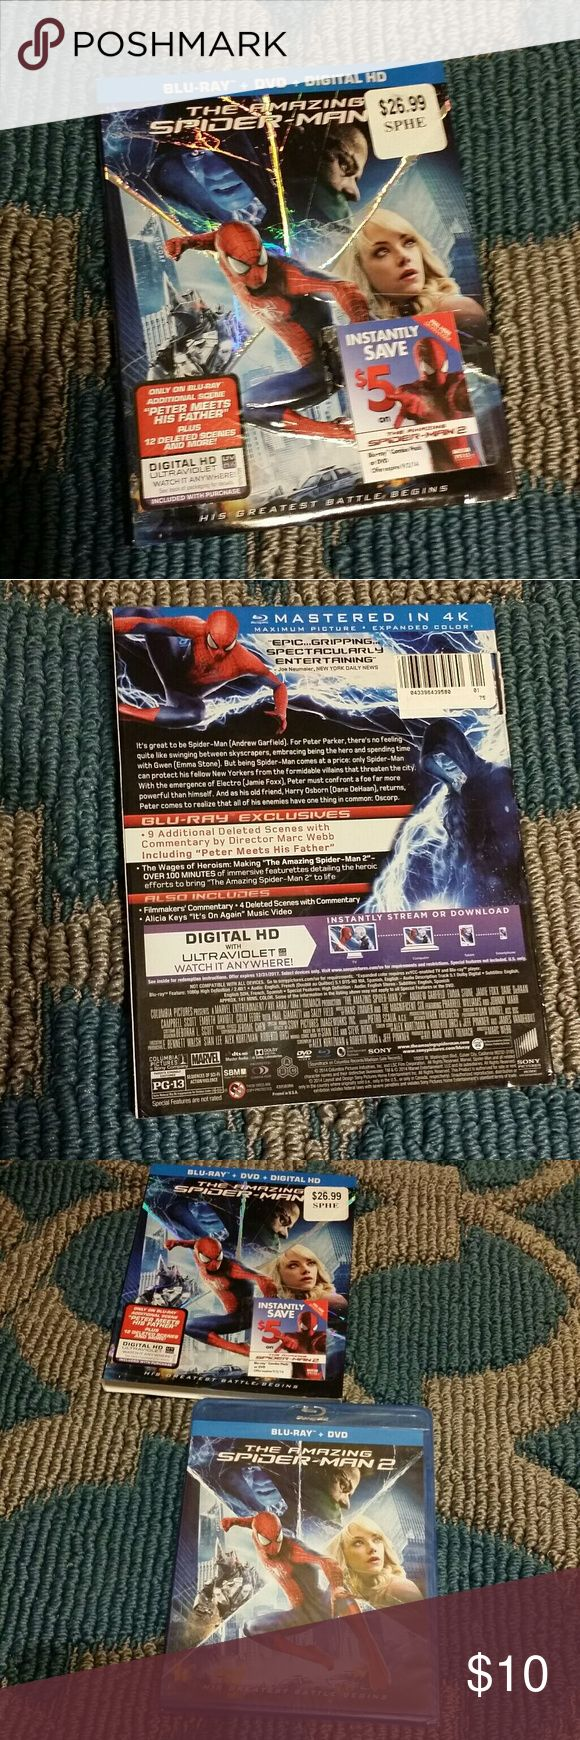 Spider-Man 2 movie blue Ray new not open box The amazing Spider-Man movie 2 blue Ray new not open spader-man movie  Other